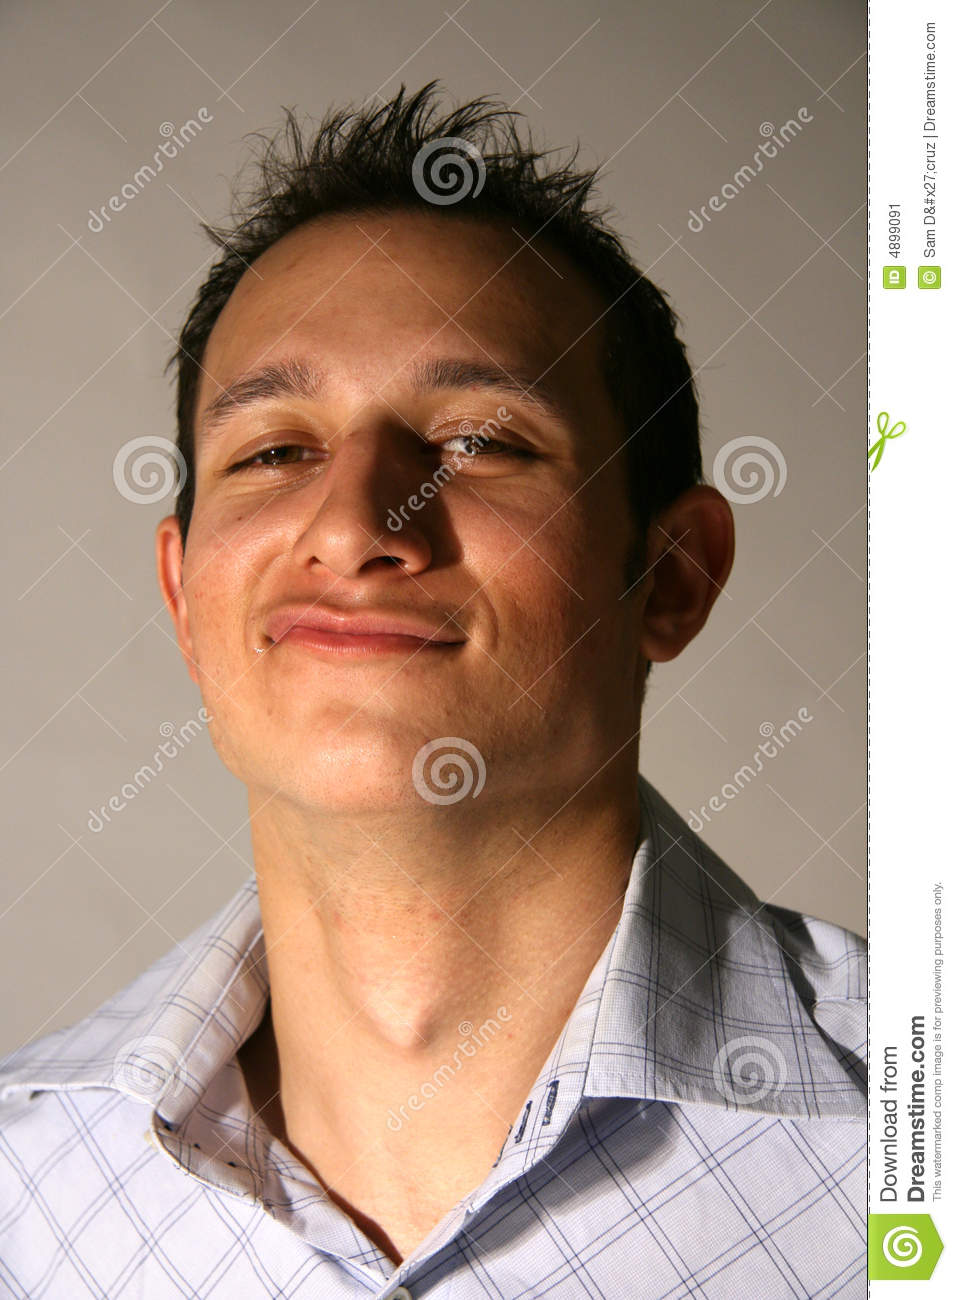 Good Looking Young Man Sneer Stock Image - Image: 4899091  Good Looking Young Man